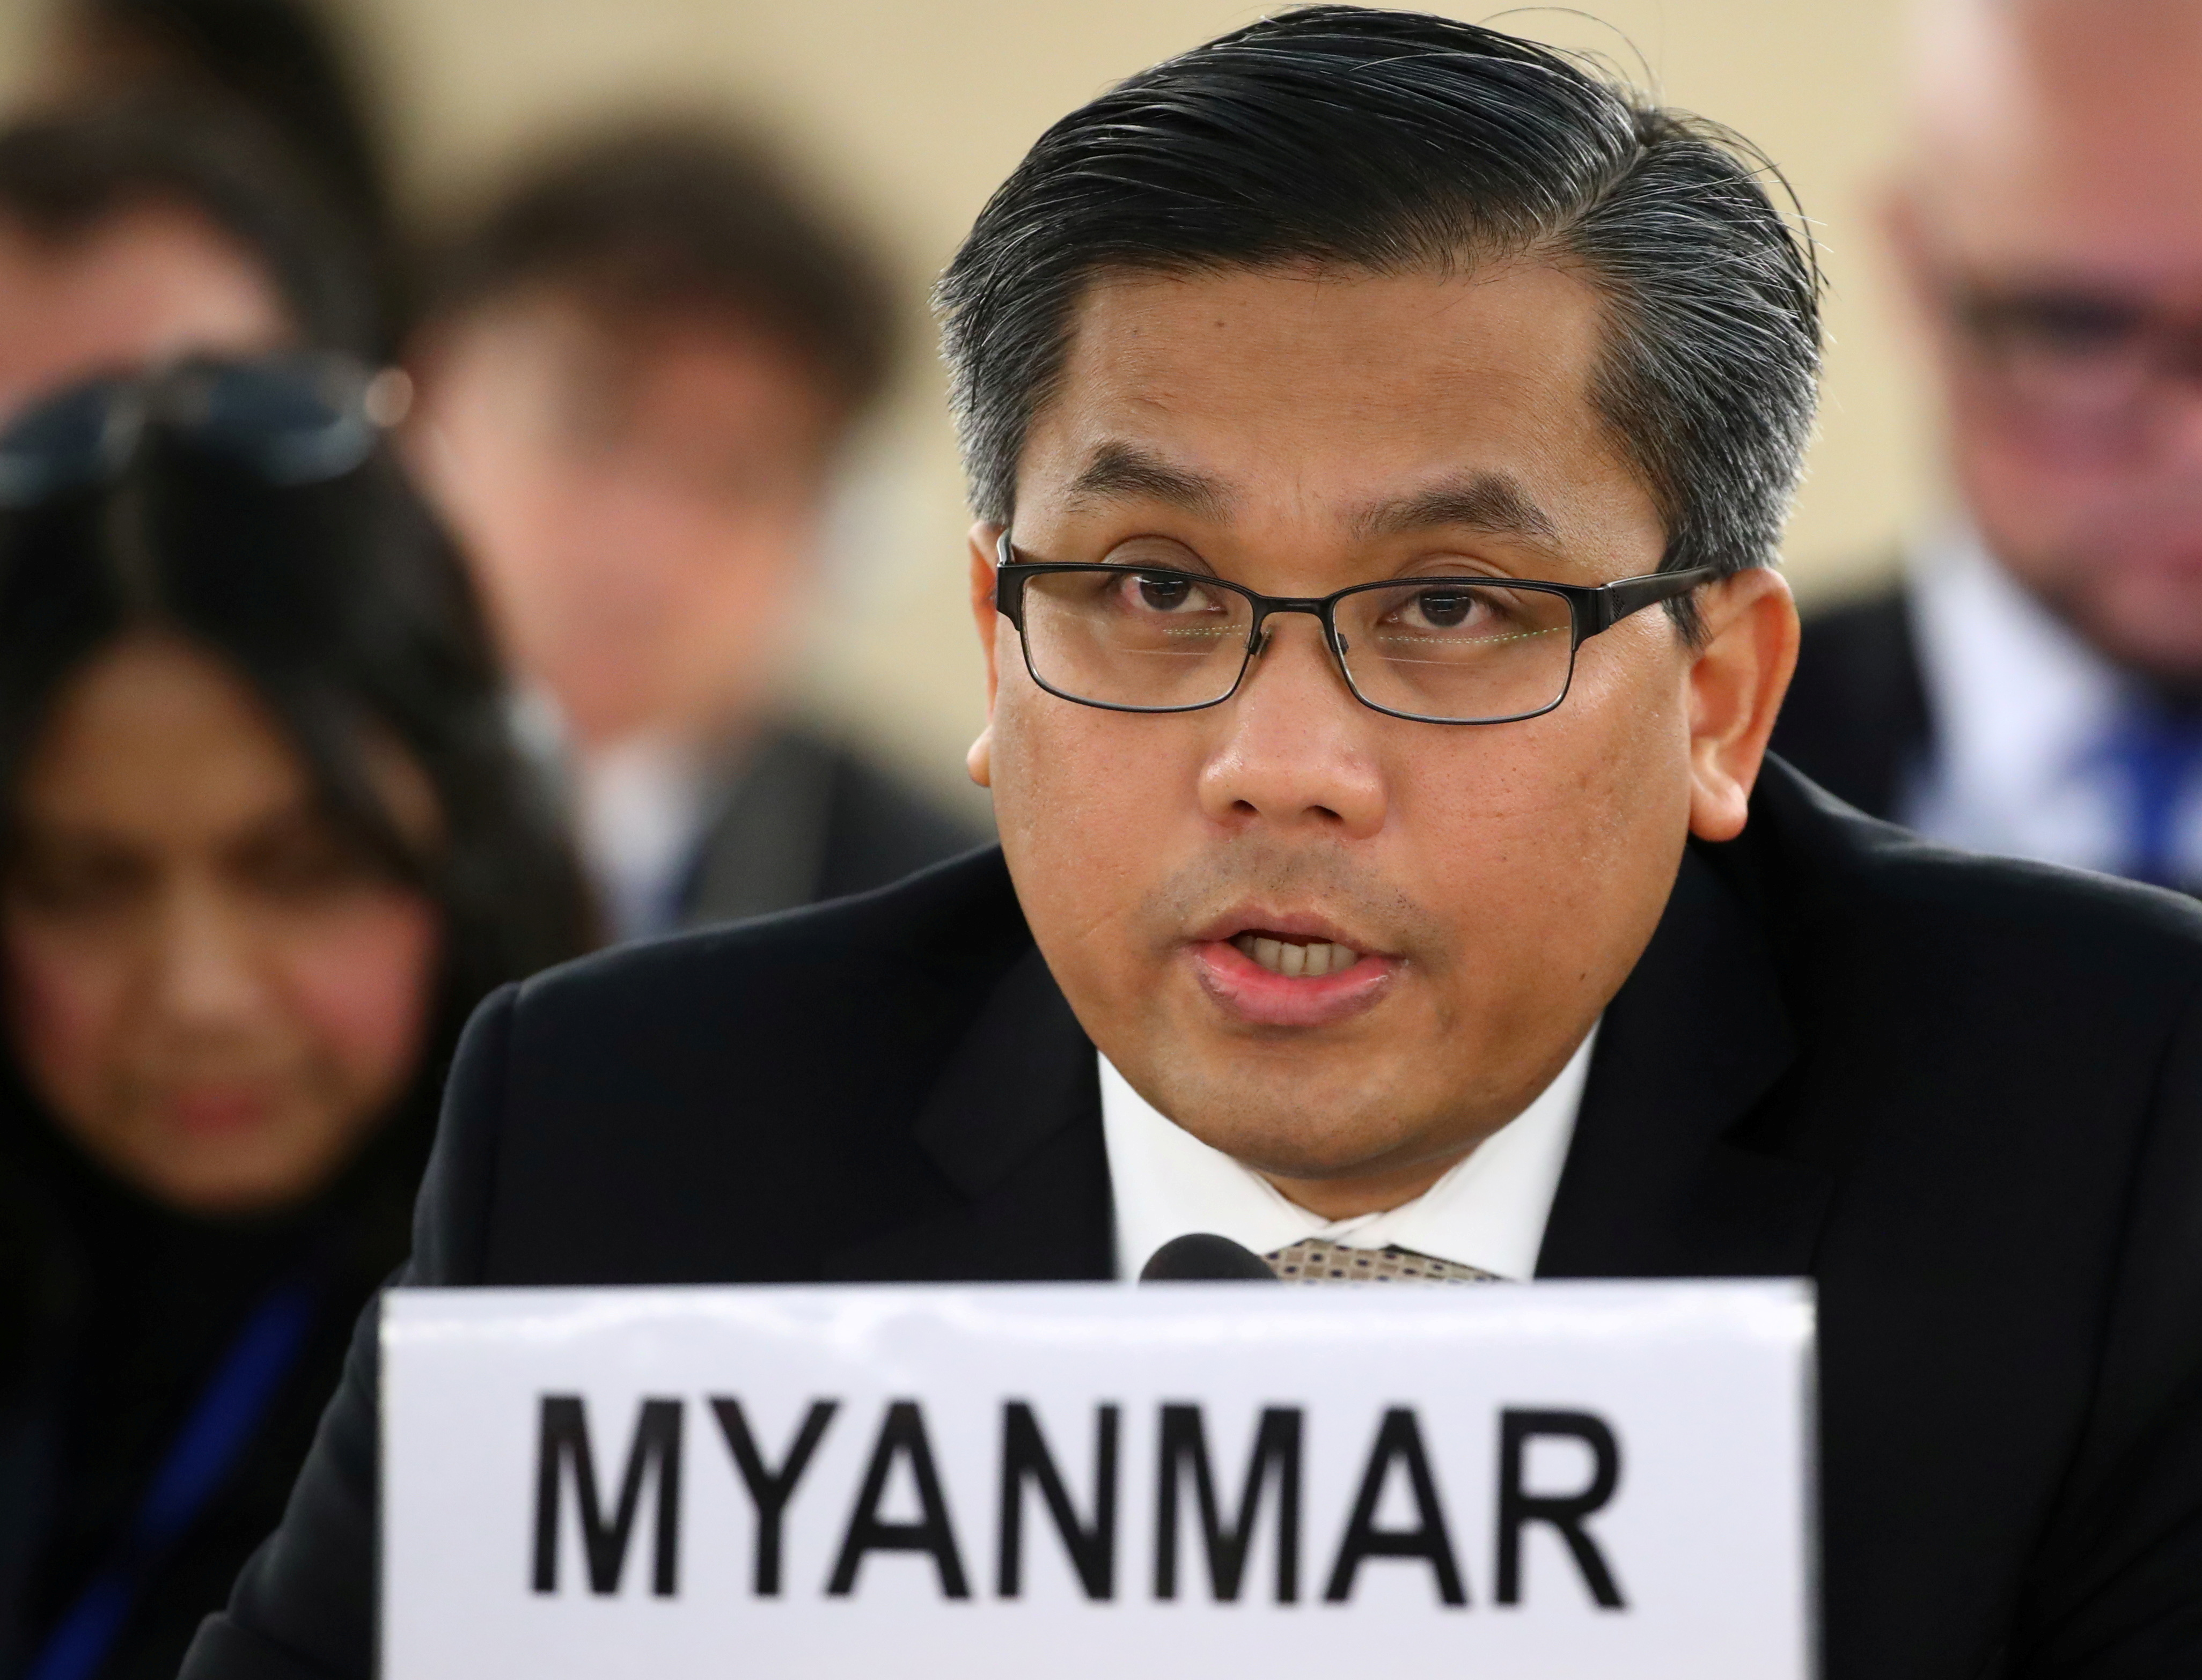 Myanmar's ambassador Kyaw Moe Tun addresses the Human Rights Council at the United Nations in Geneva, Switzerland, March 11, 2019. REUTERS/Denis Balibouse/File Photo